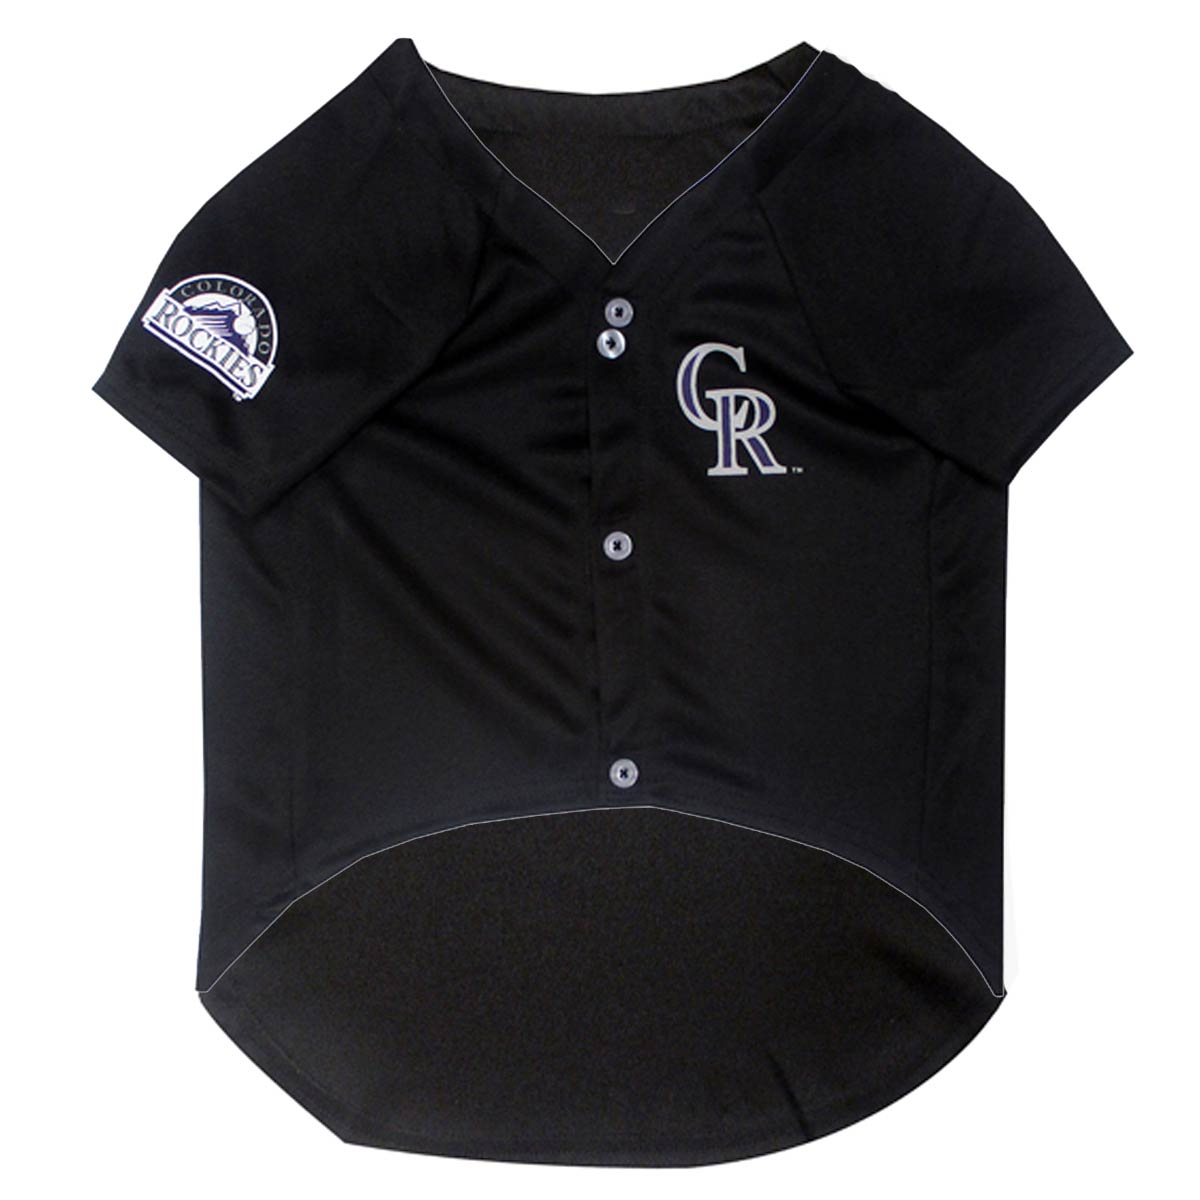 huge selection of 6d741 38a68 Colorado Rockies Officially Licensed Dog Jersey - Black